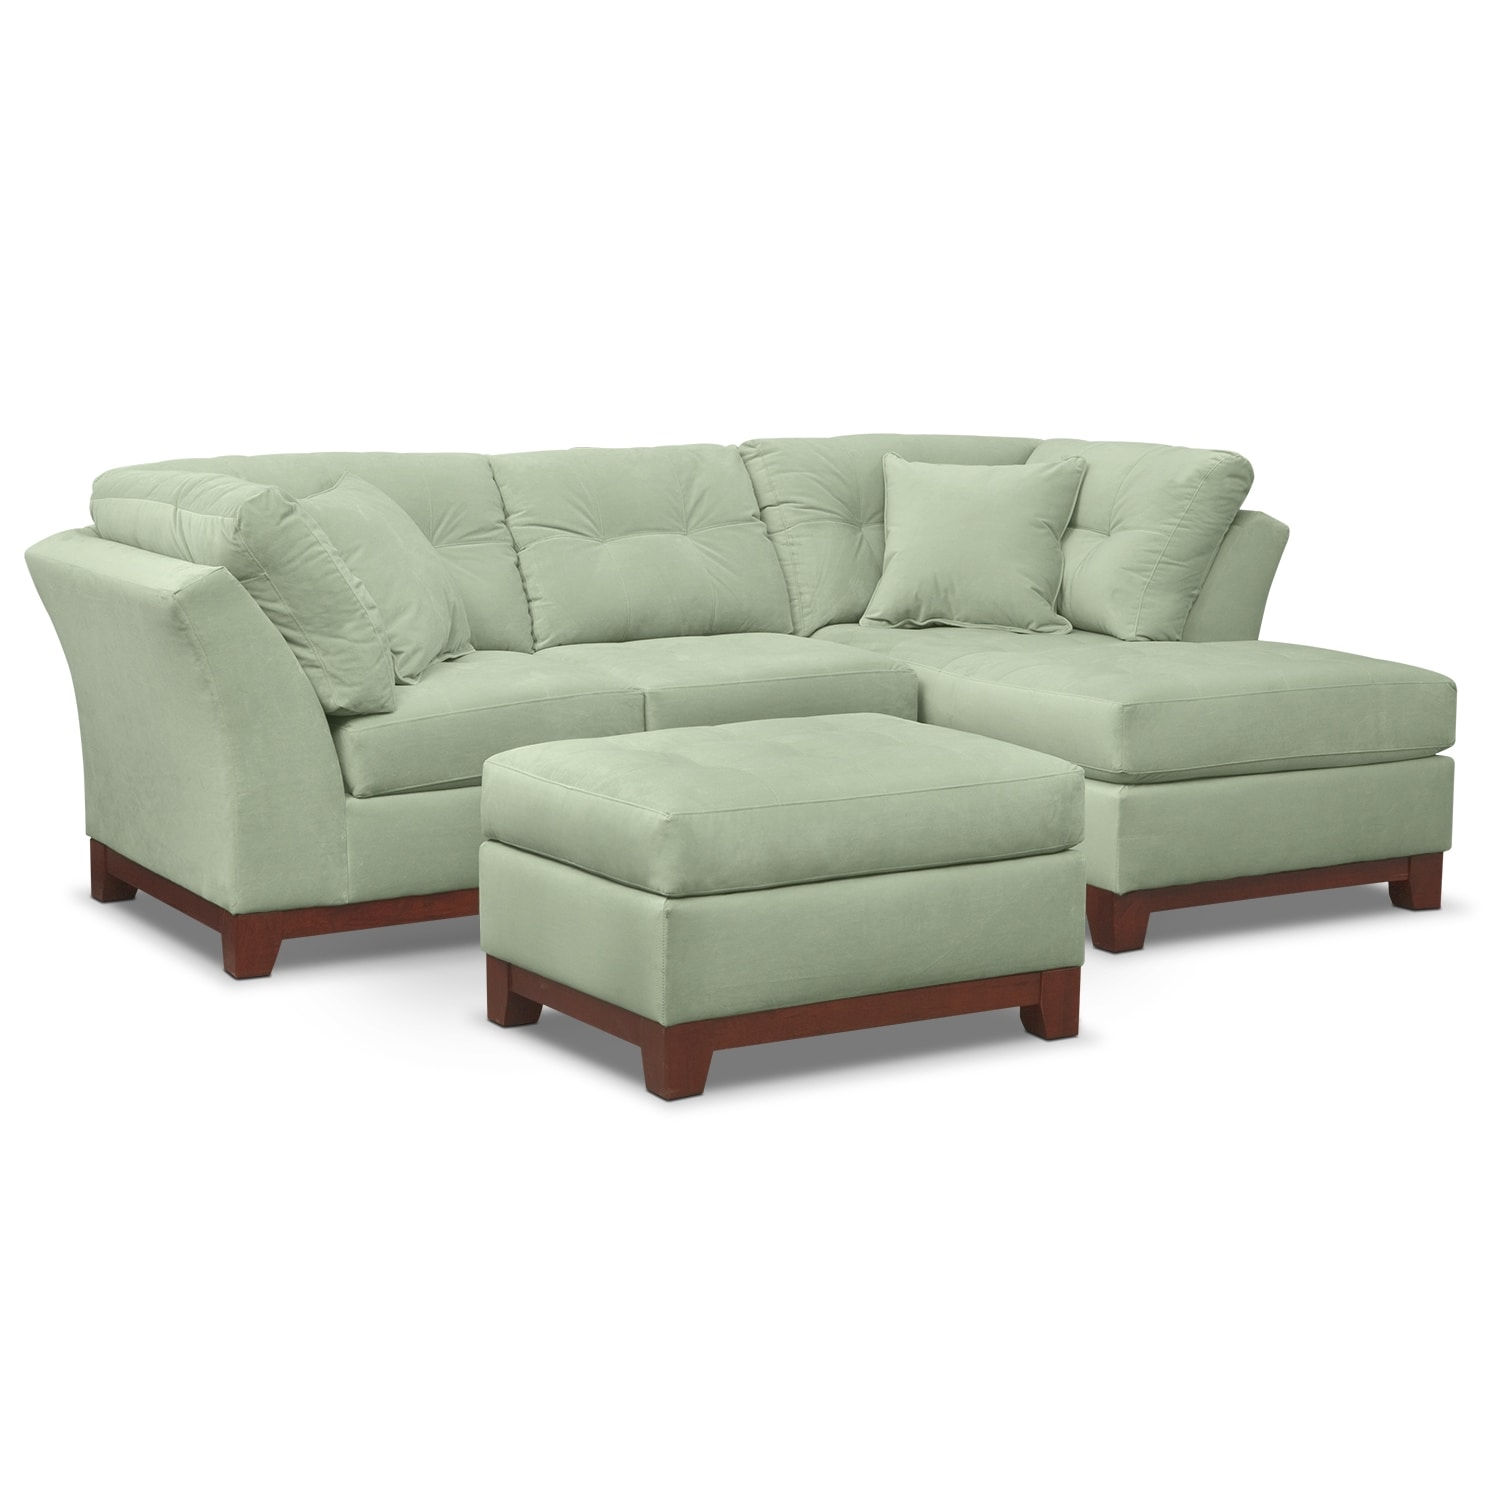 Living Room Furniture - Solace Spa II 2 Pc. Sectional (Alternate Reverse) and Ottoman